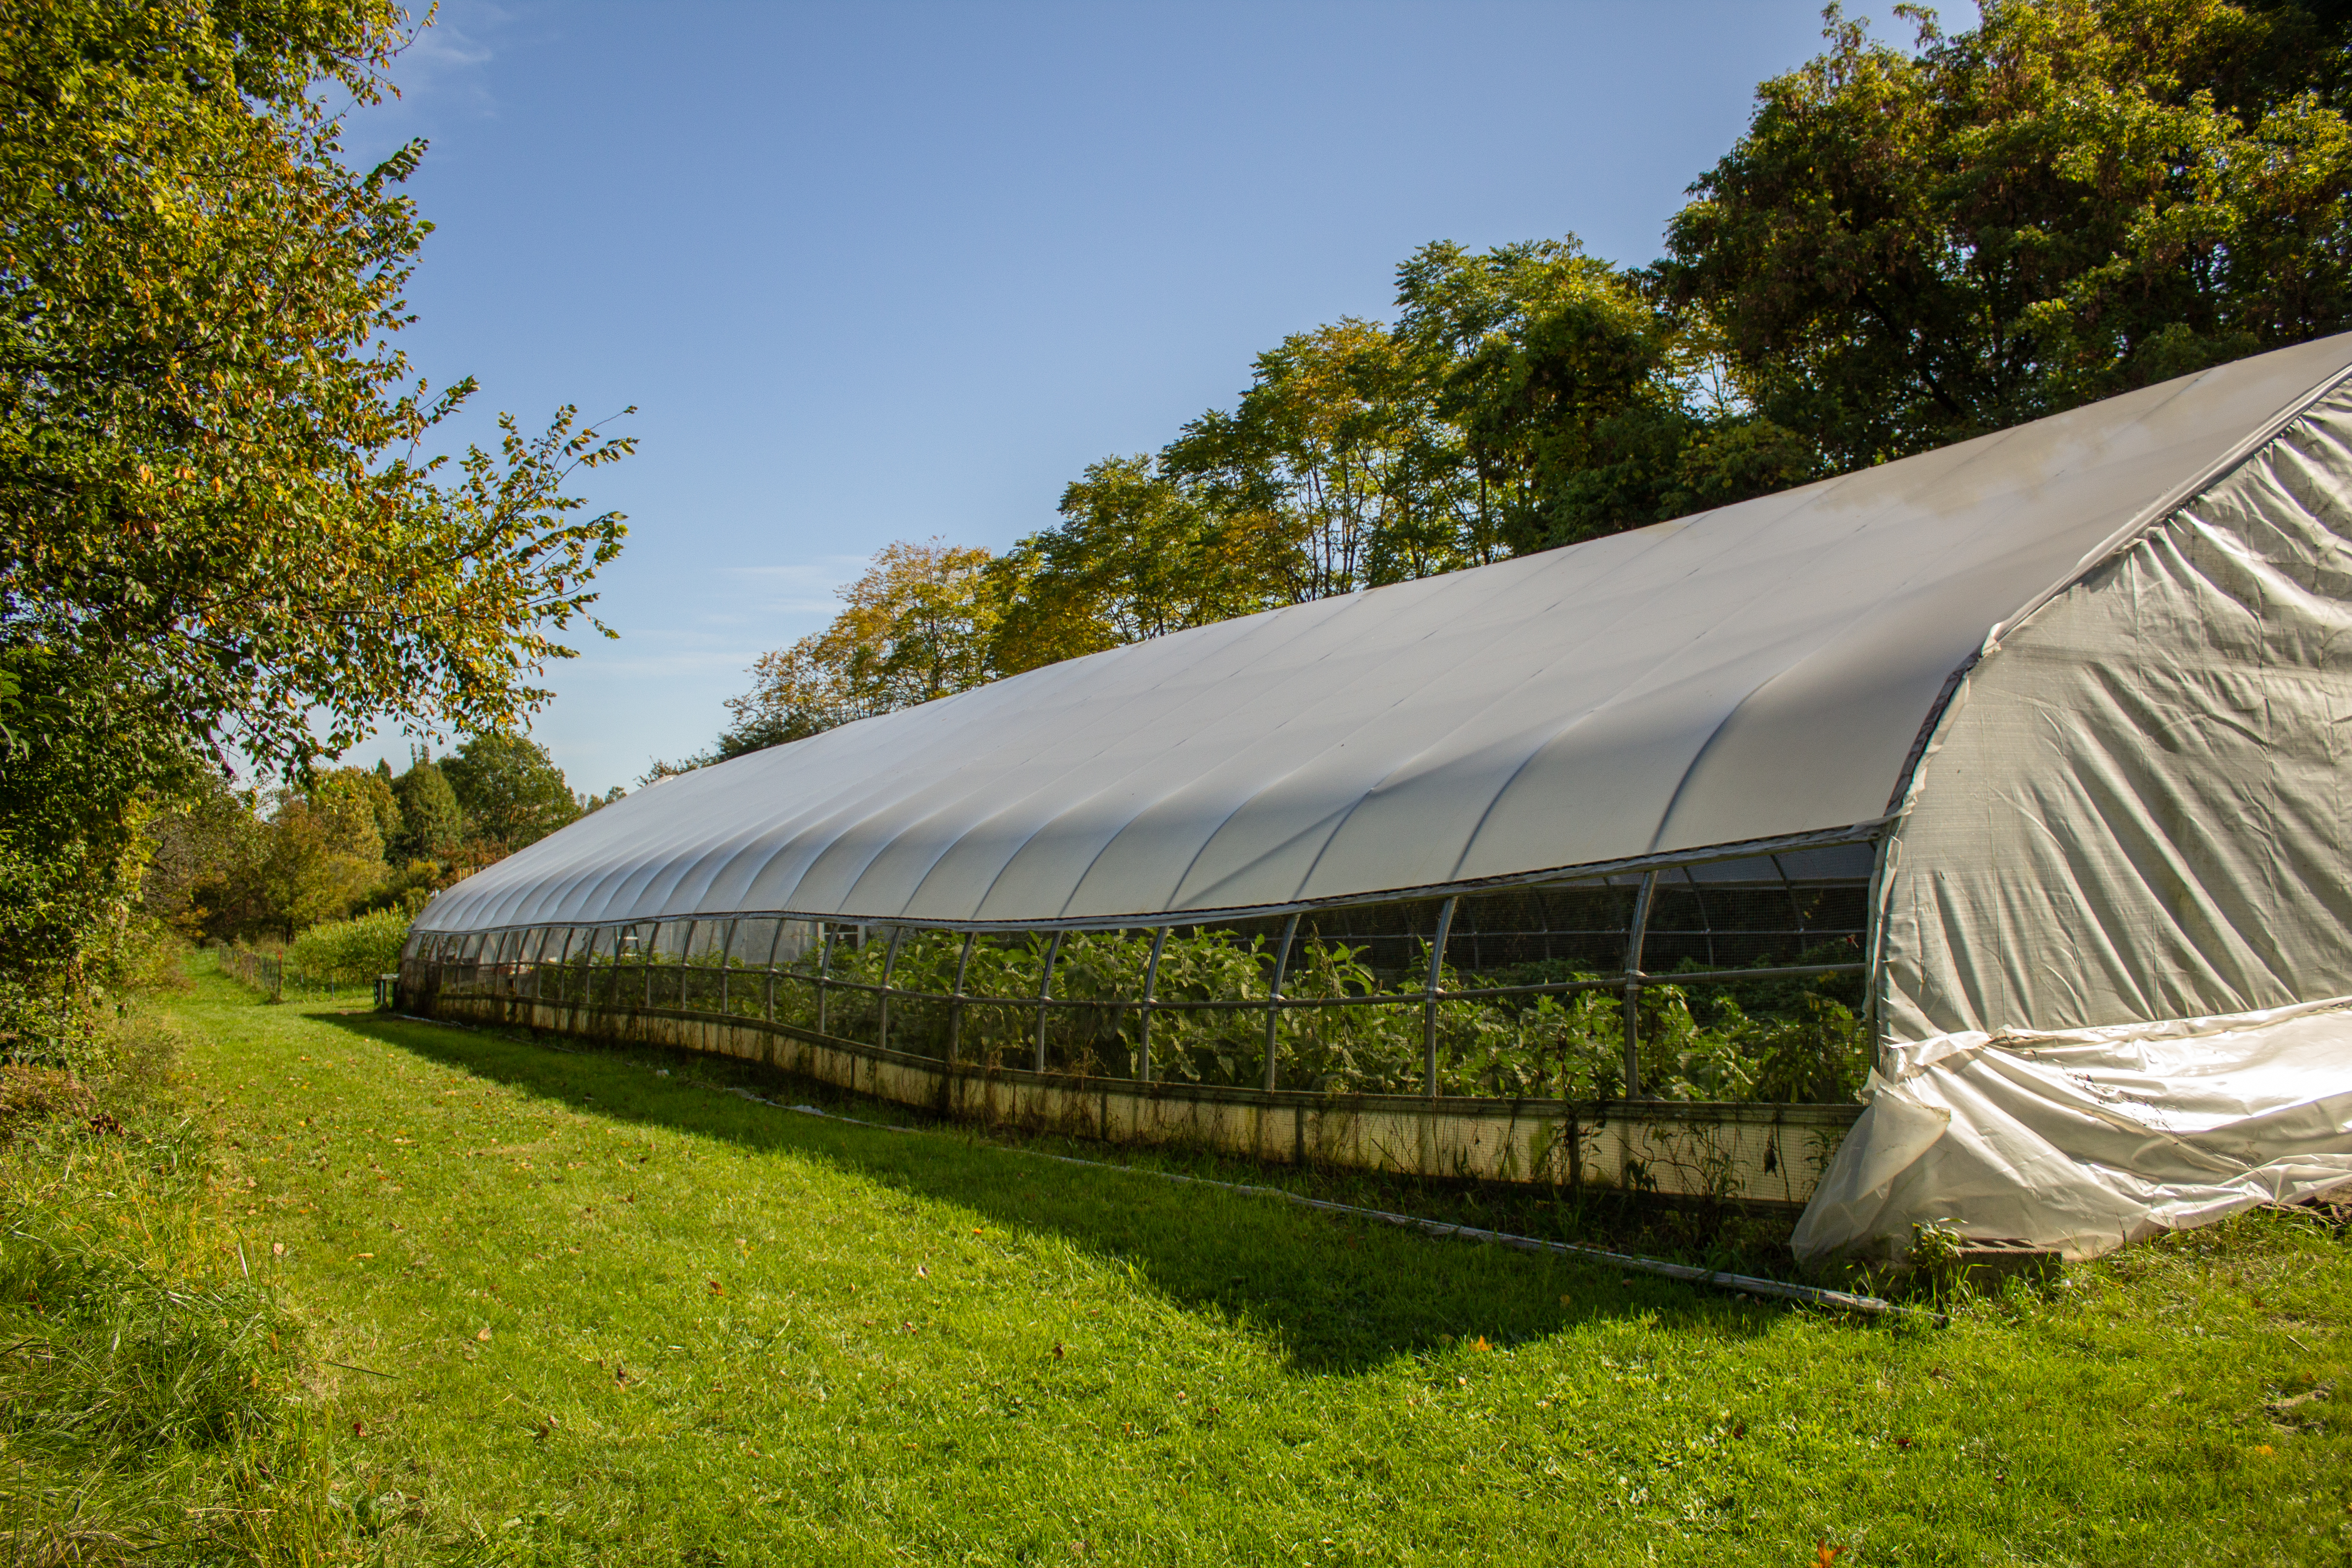 A GREENHOUSE IN ROUGE PARK ON DETROIT'S WEST SIDE. PHOTO JOHN BOZICK